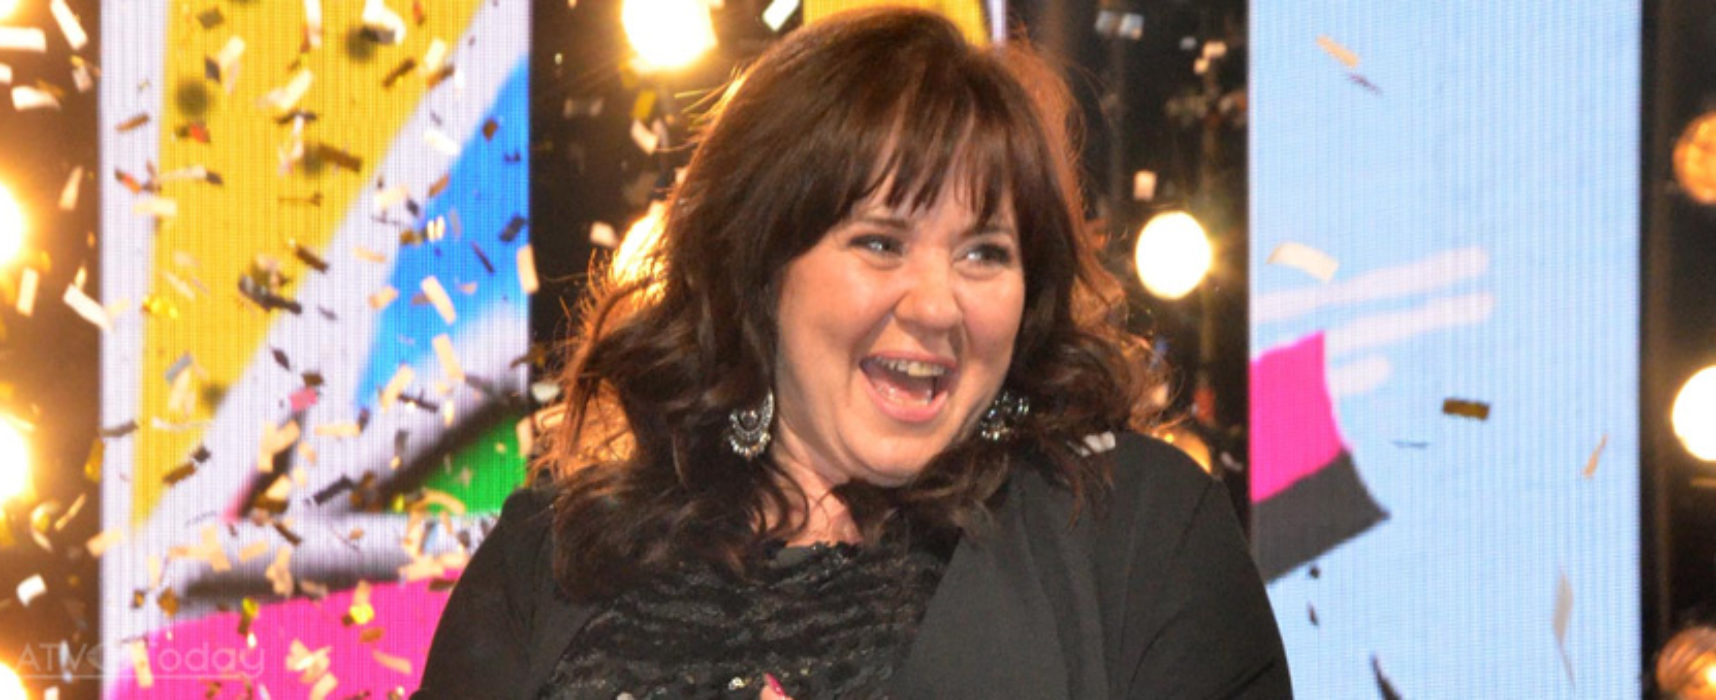 Loose Woman Coleen Nolan wins Winter 2017 Celebrity Big Brother